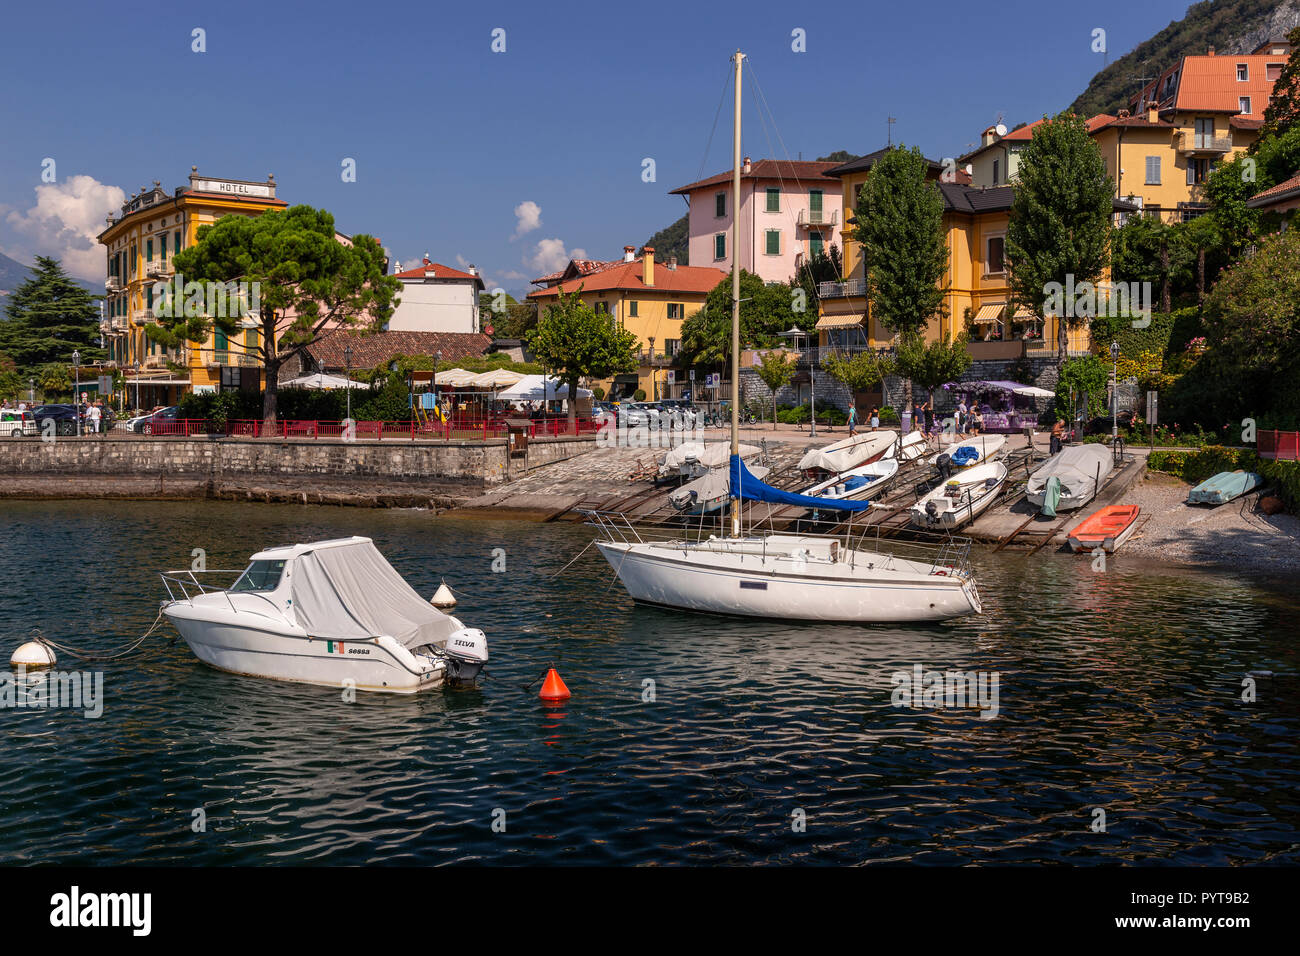 Boats moored at Varenna on Lake Como in northern Italy Stock Photo